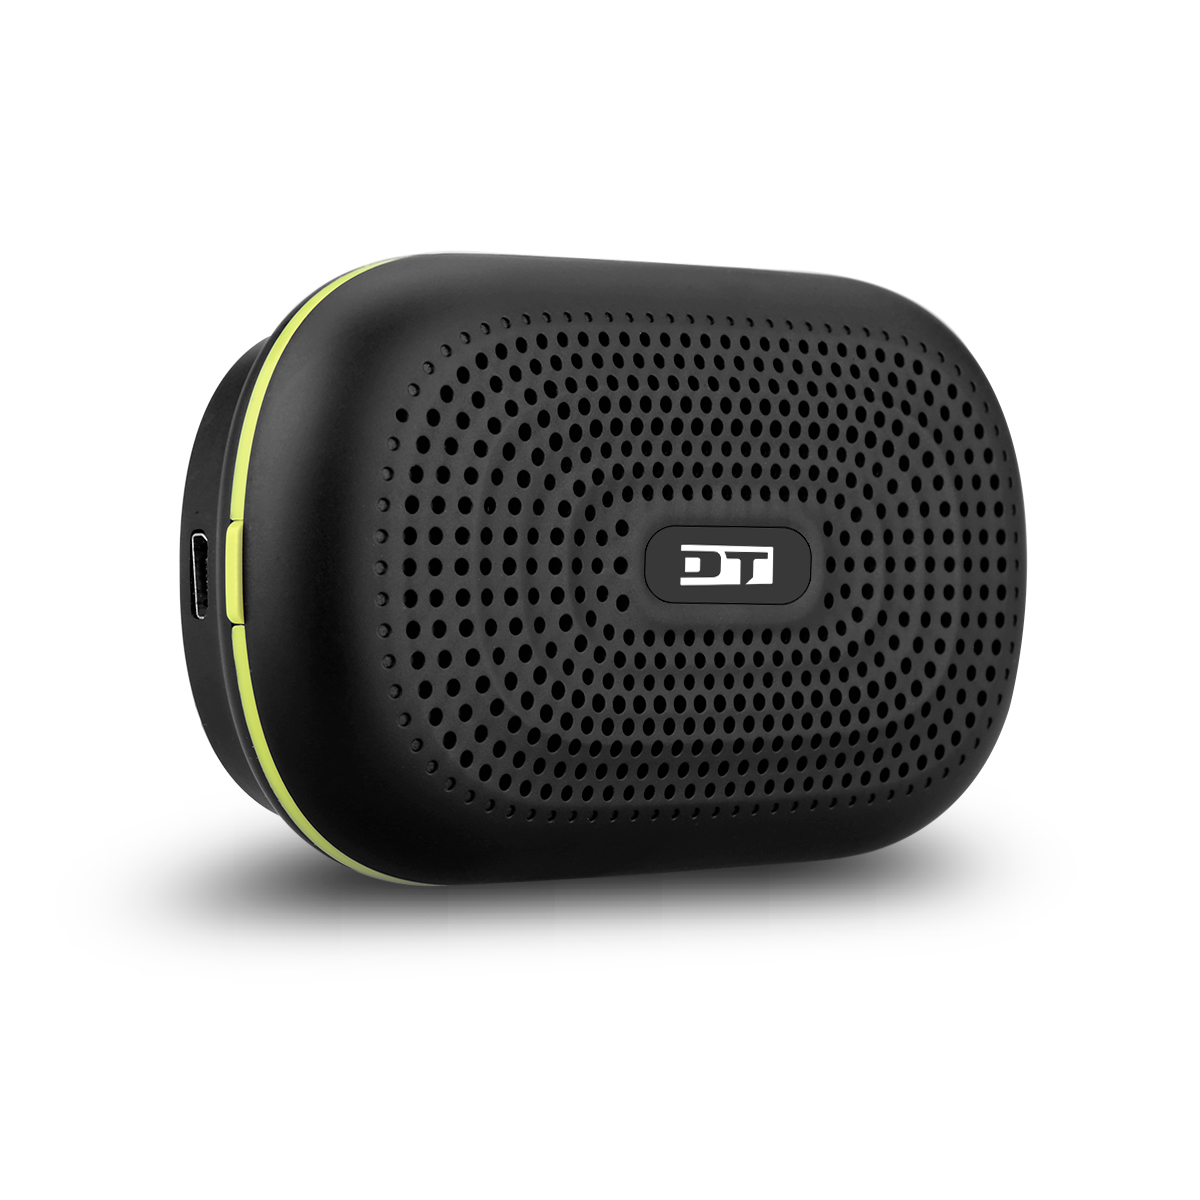 New Multi-function Wireless Bluetooth Speaker DOINGTOP DT-B850 with 3000 mAh Power Bank Function Suction Chuck Phone Stand Holder Handsfree